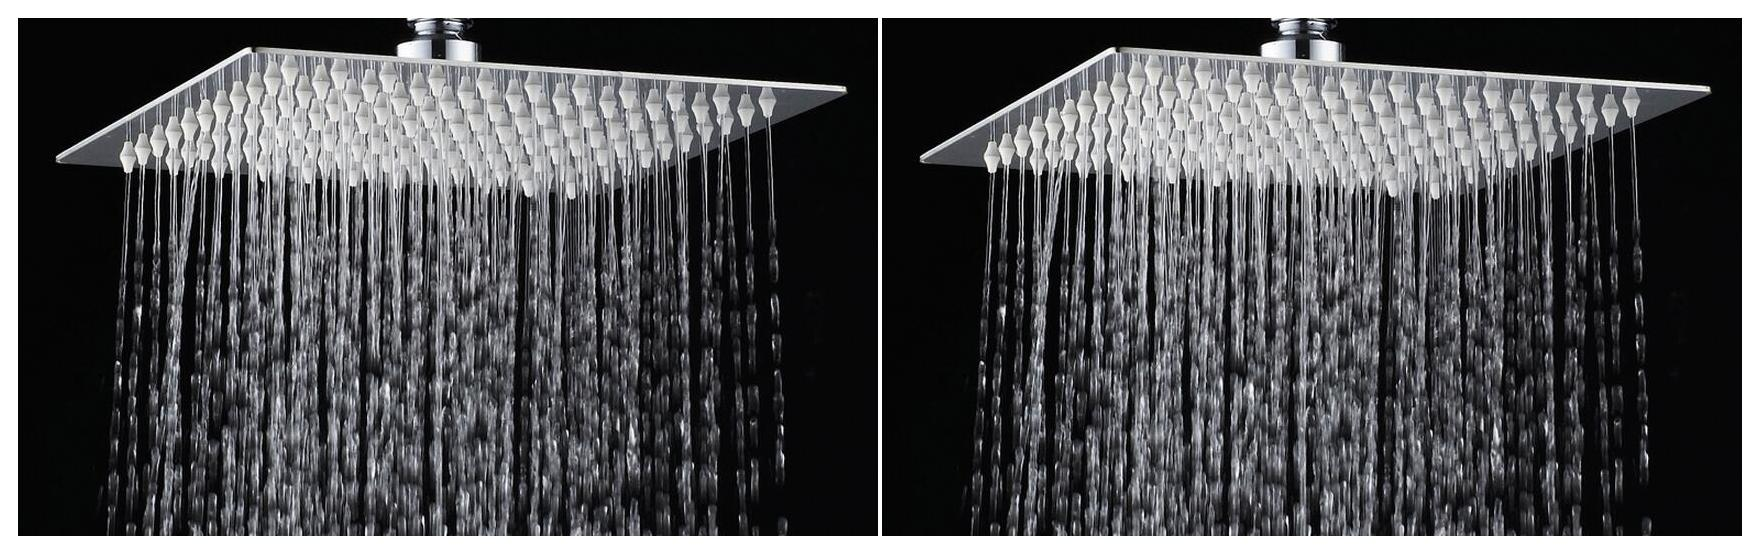 Logger   6 Inches X 6 Inches Ultra Slim Square Shower Head Only Set Of 2 Pcs